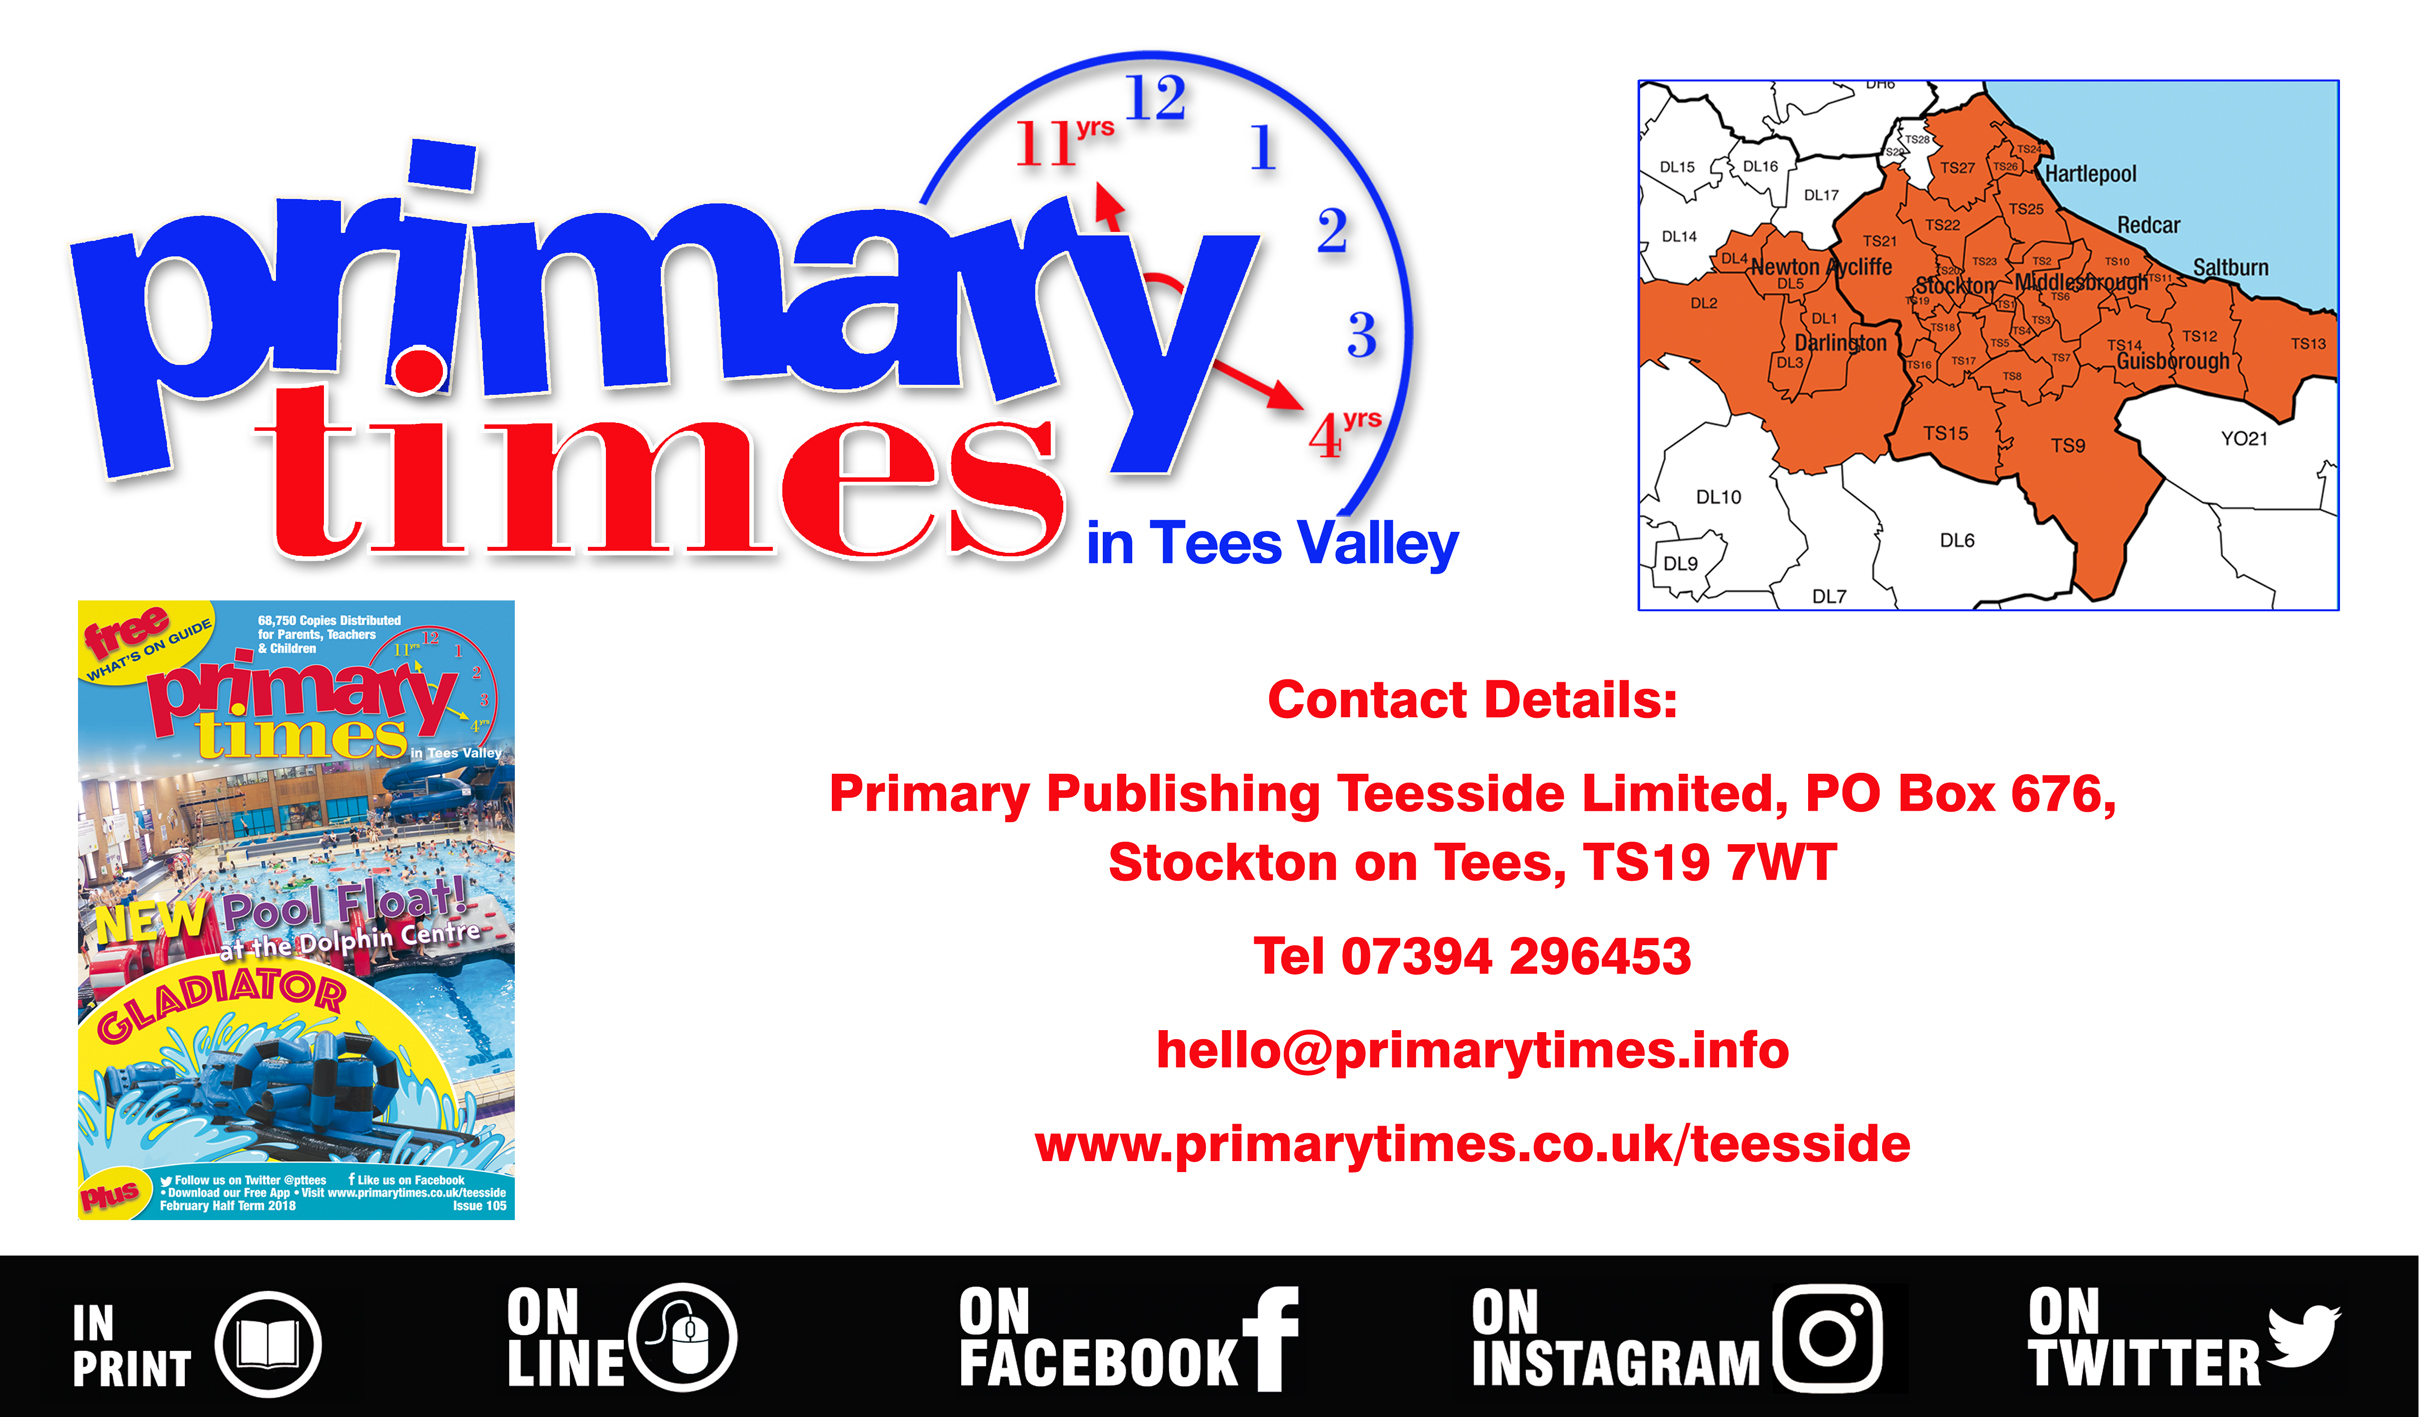 How to get in touch with Primary Times Tees Valley